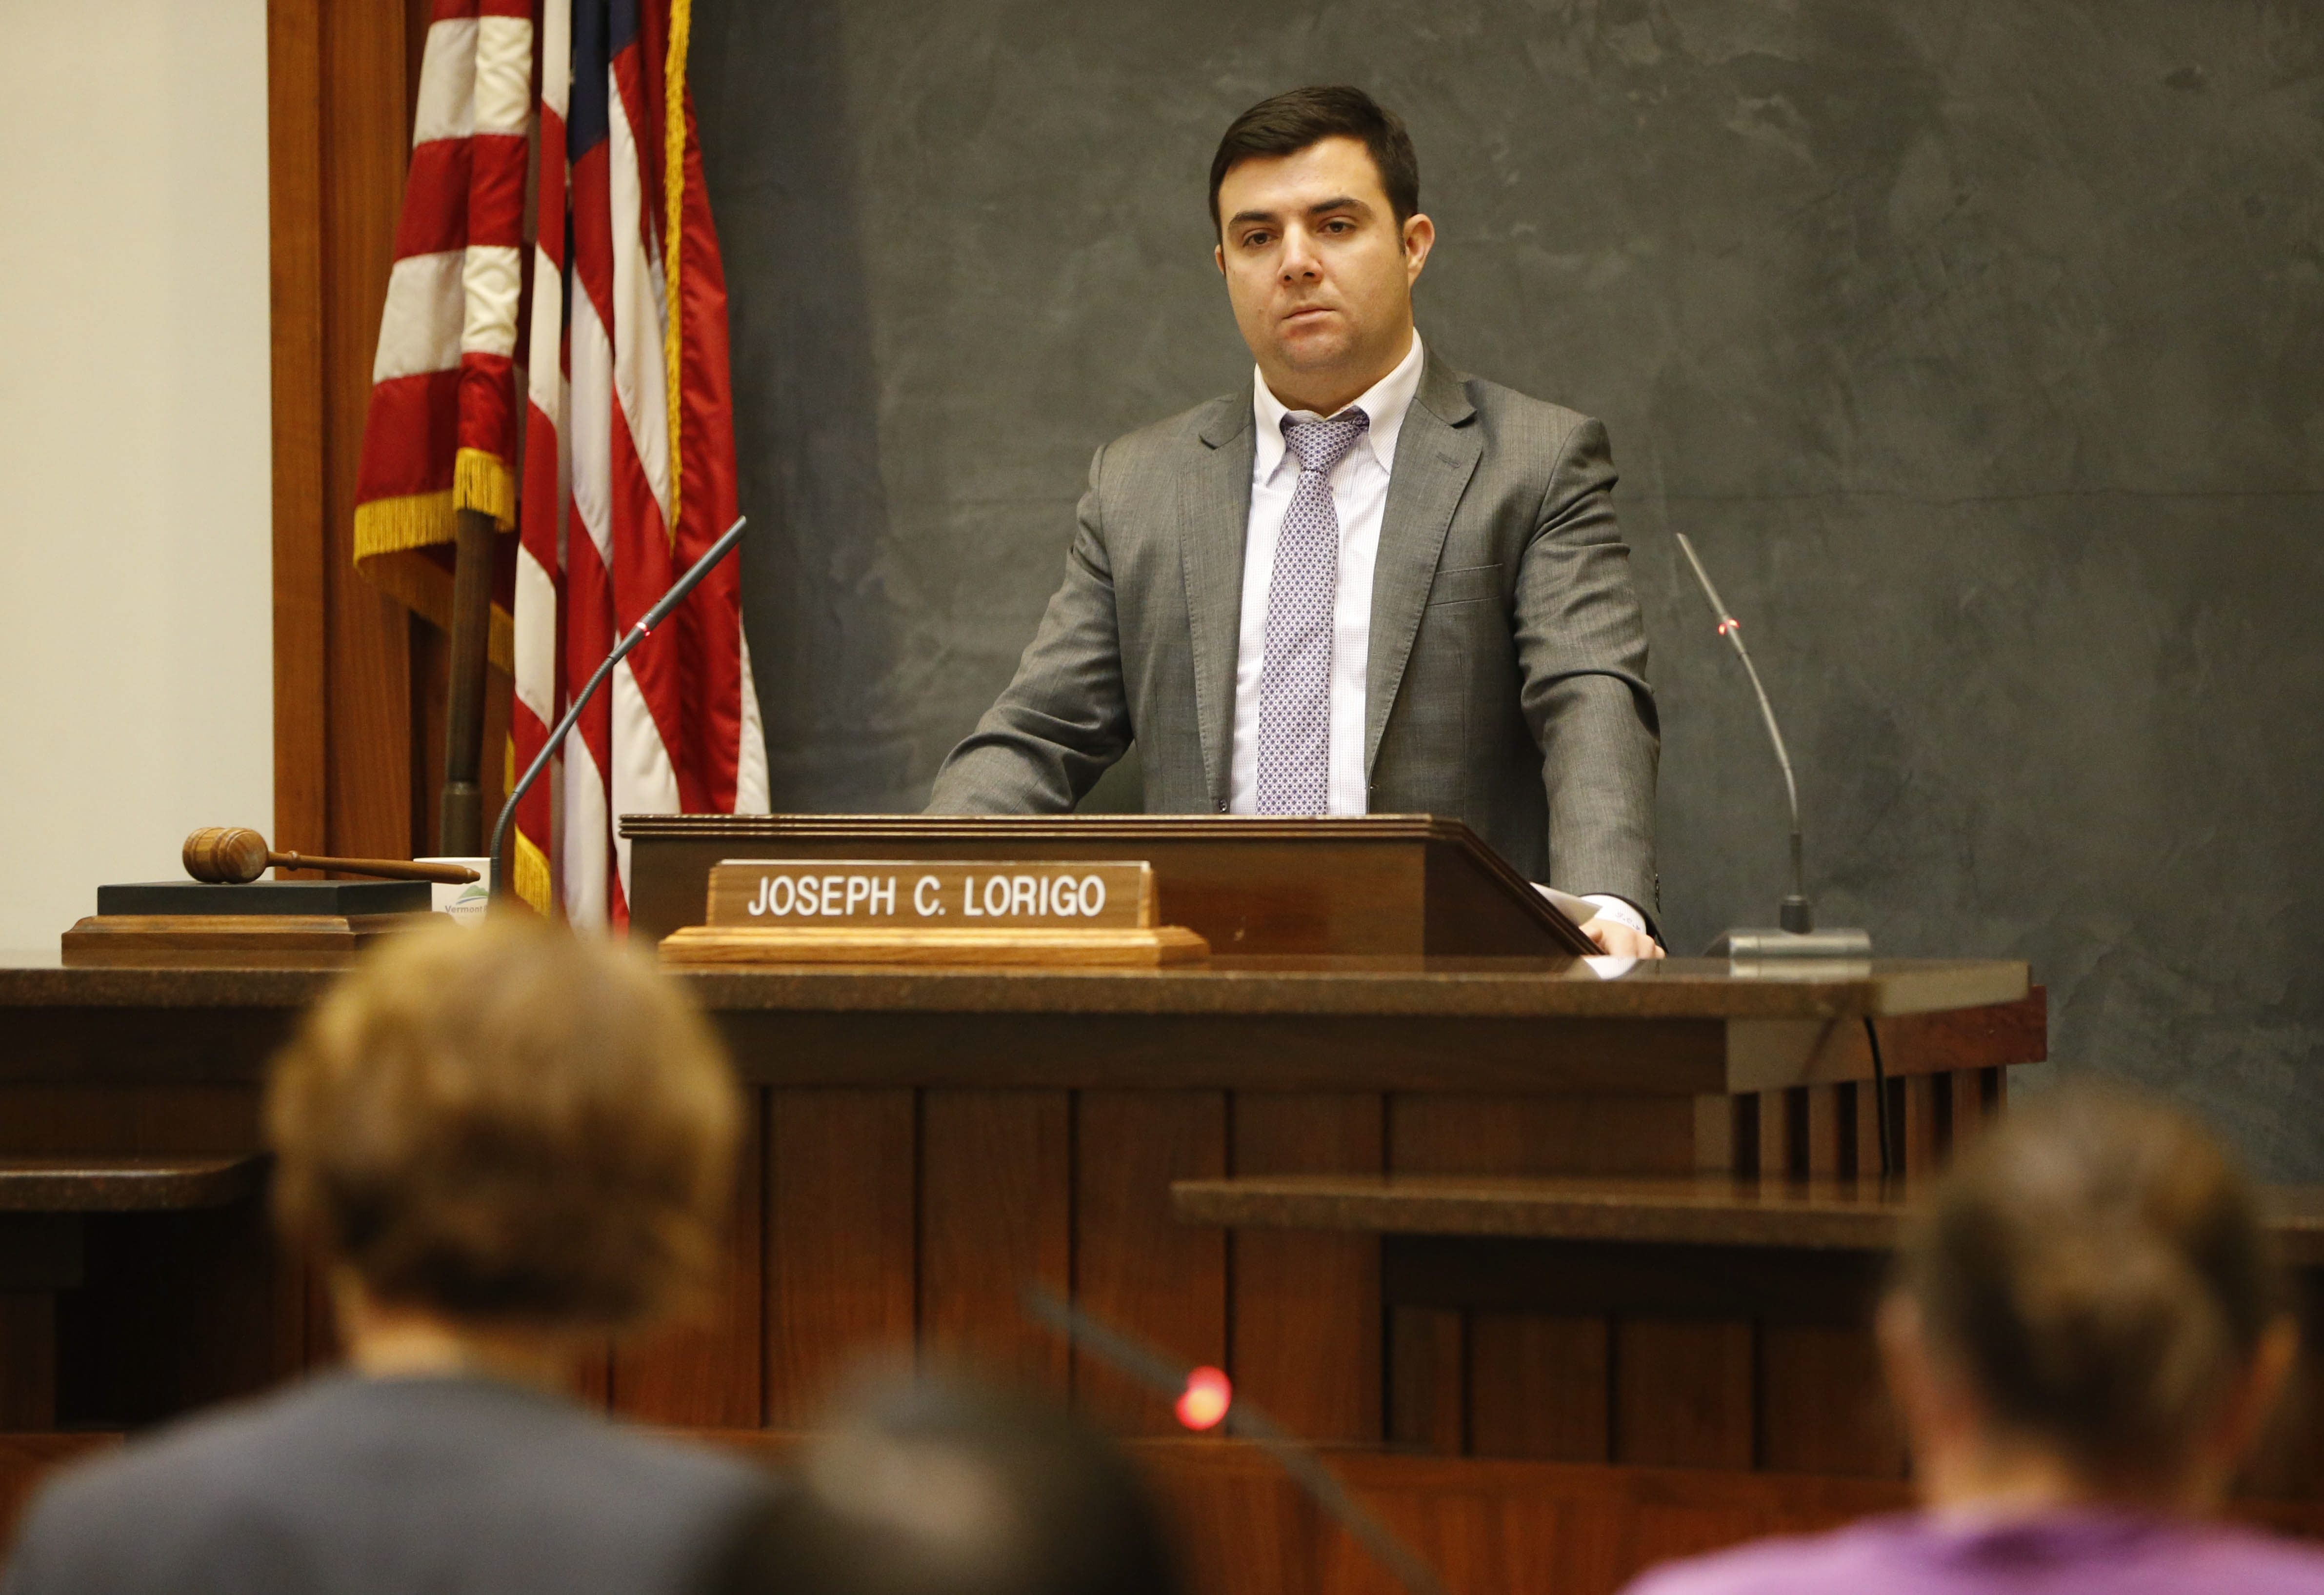 Erie County Legislature Majority Leader Joseph Lorigo has given up two posts in West Seneca's government after legal opinions stated that they were a conflict of interest.